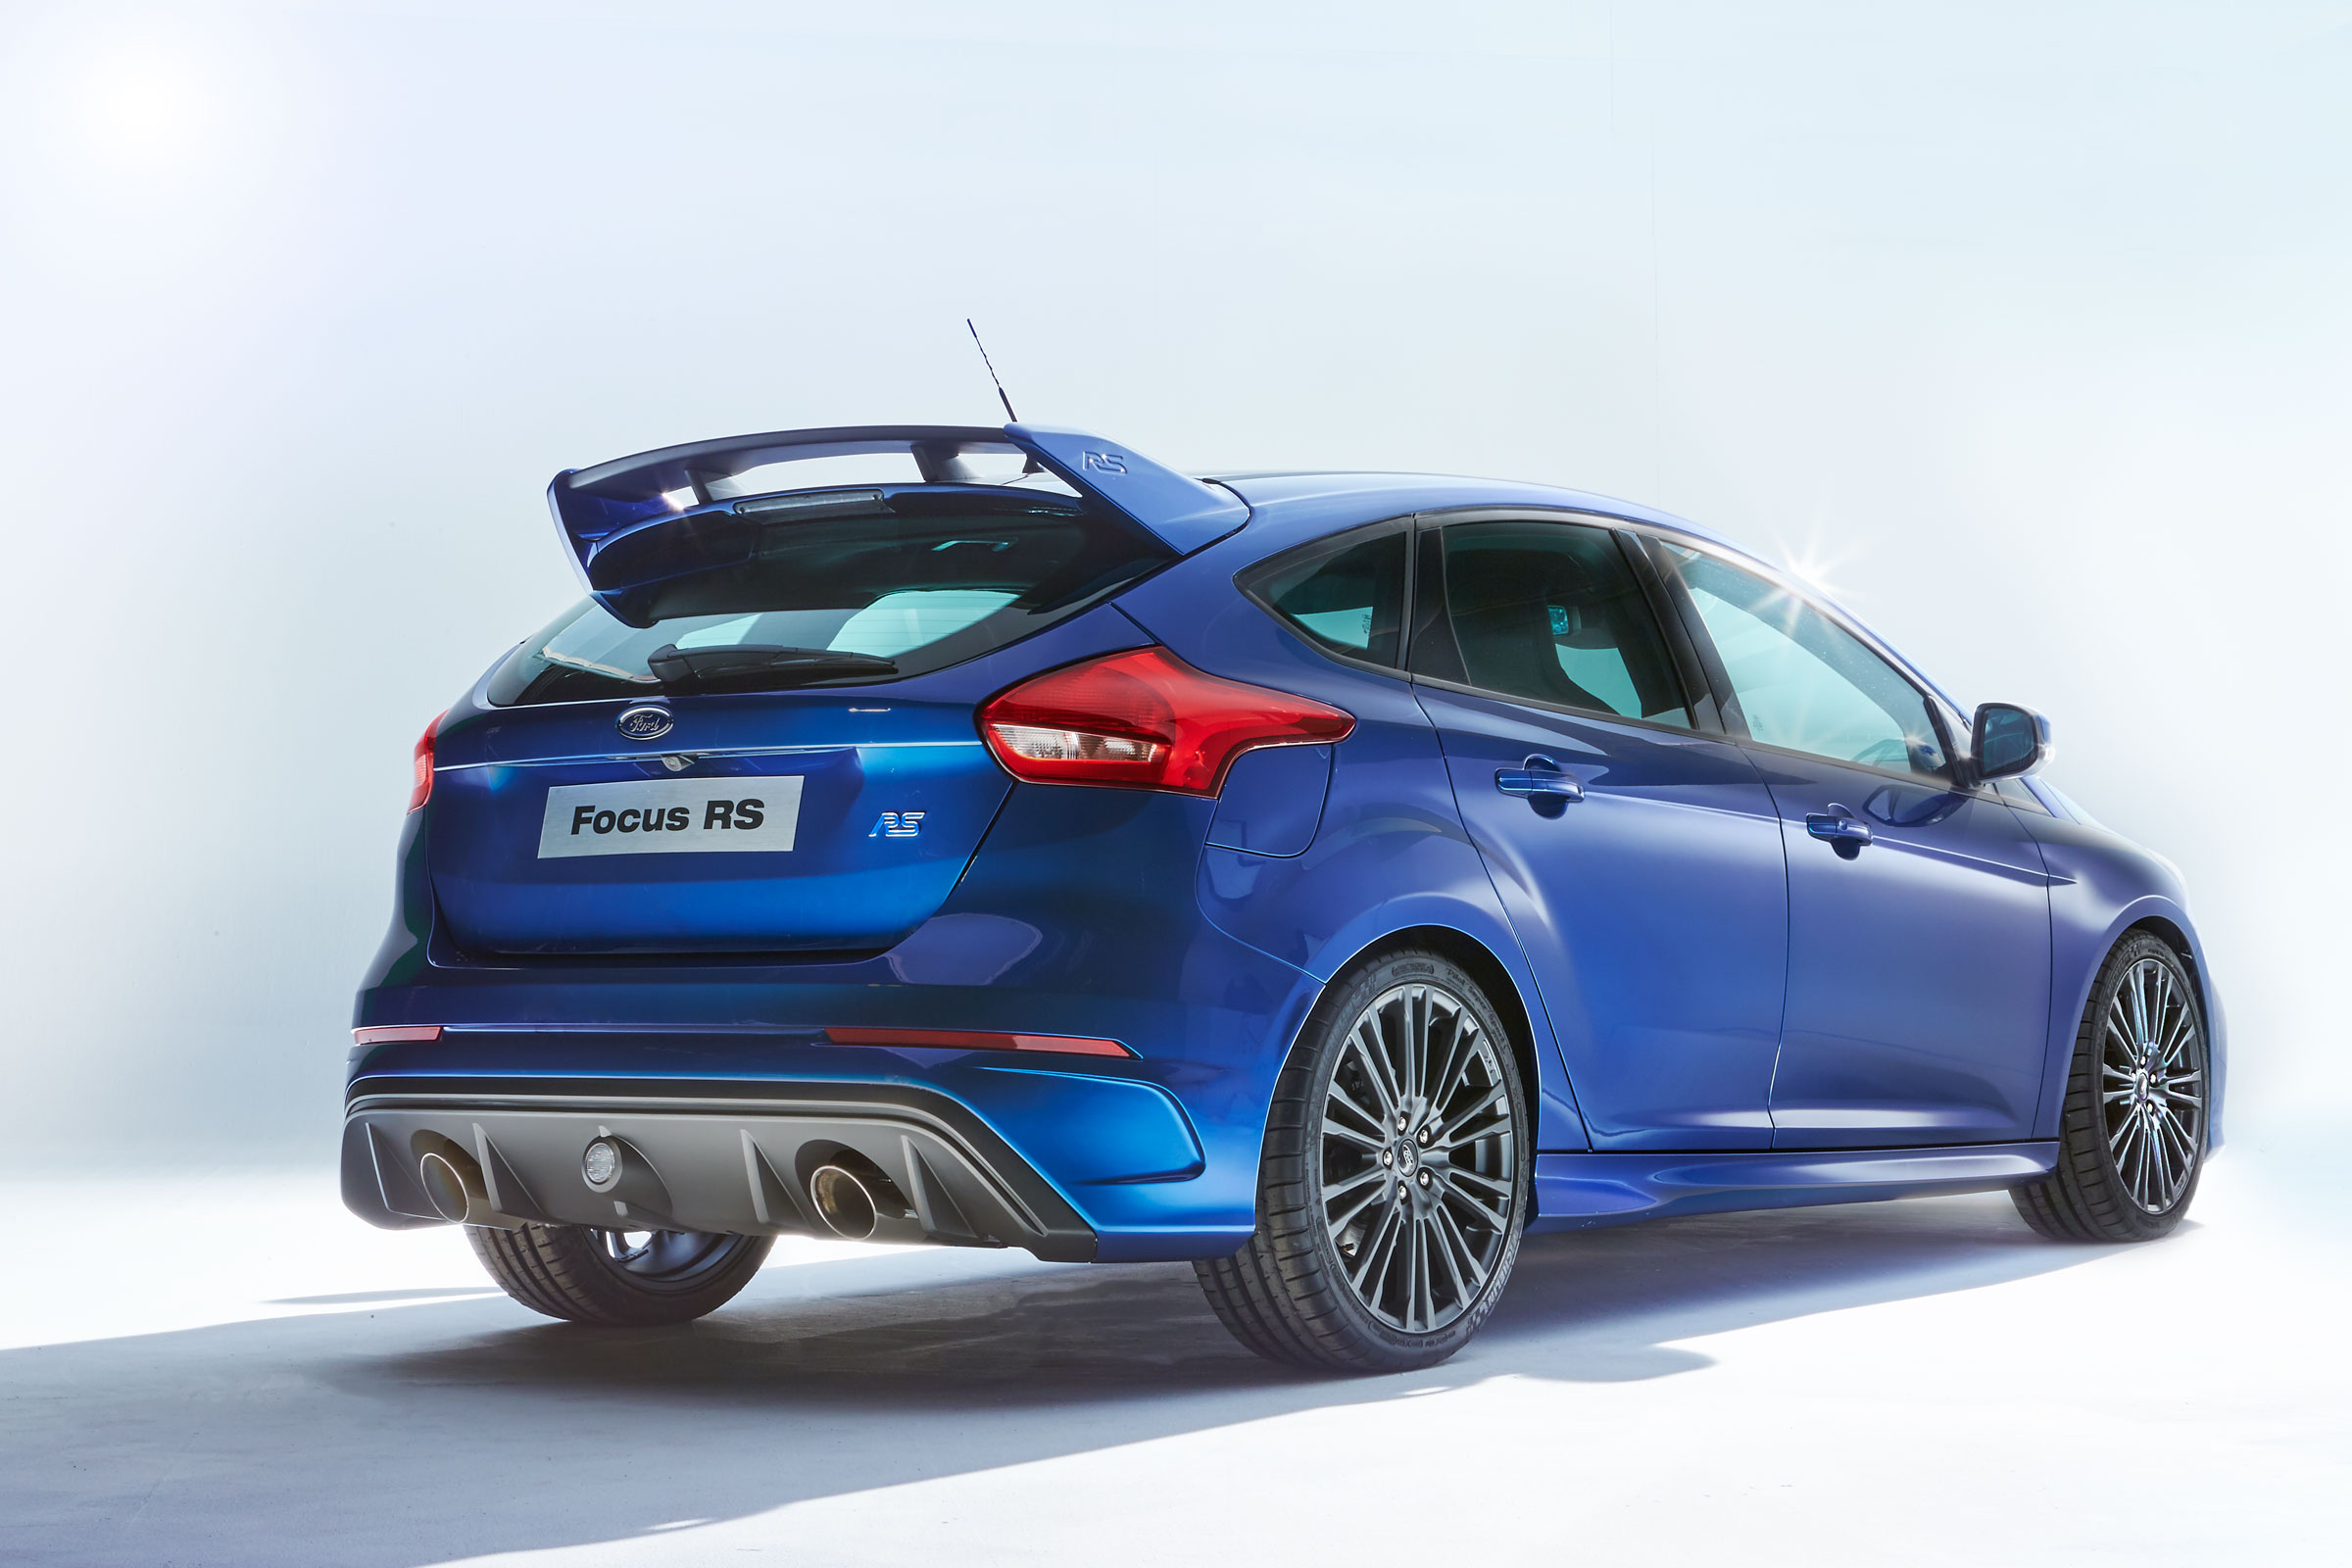 2016 ford focus rs debuts in cologne here are the official details. Black Bedroom Furniture Sets. Home Design Ideas